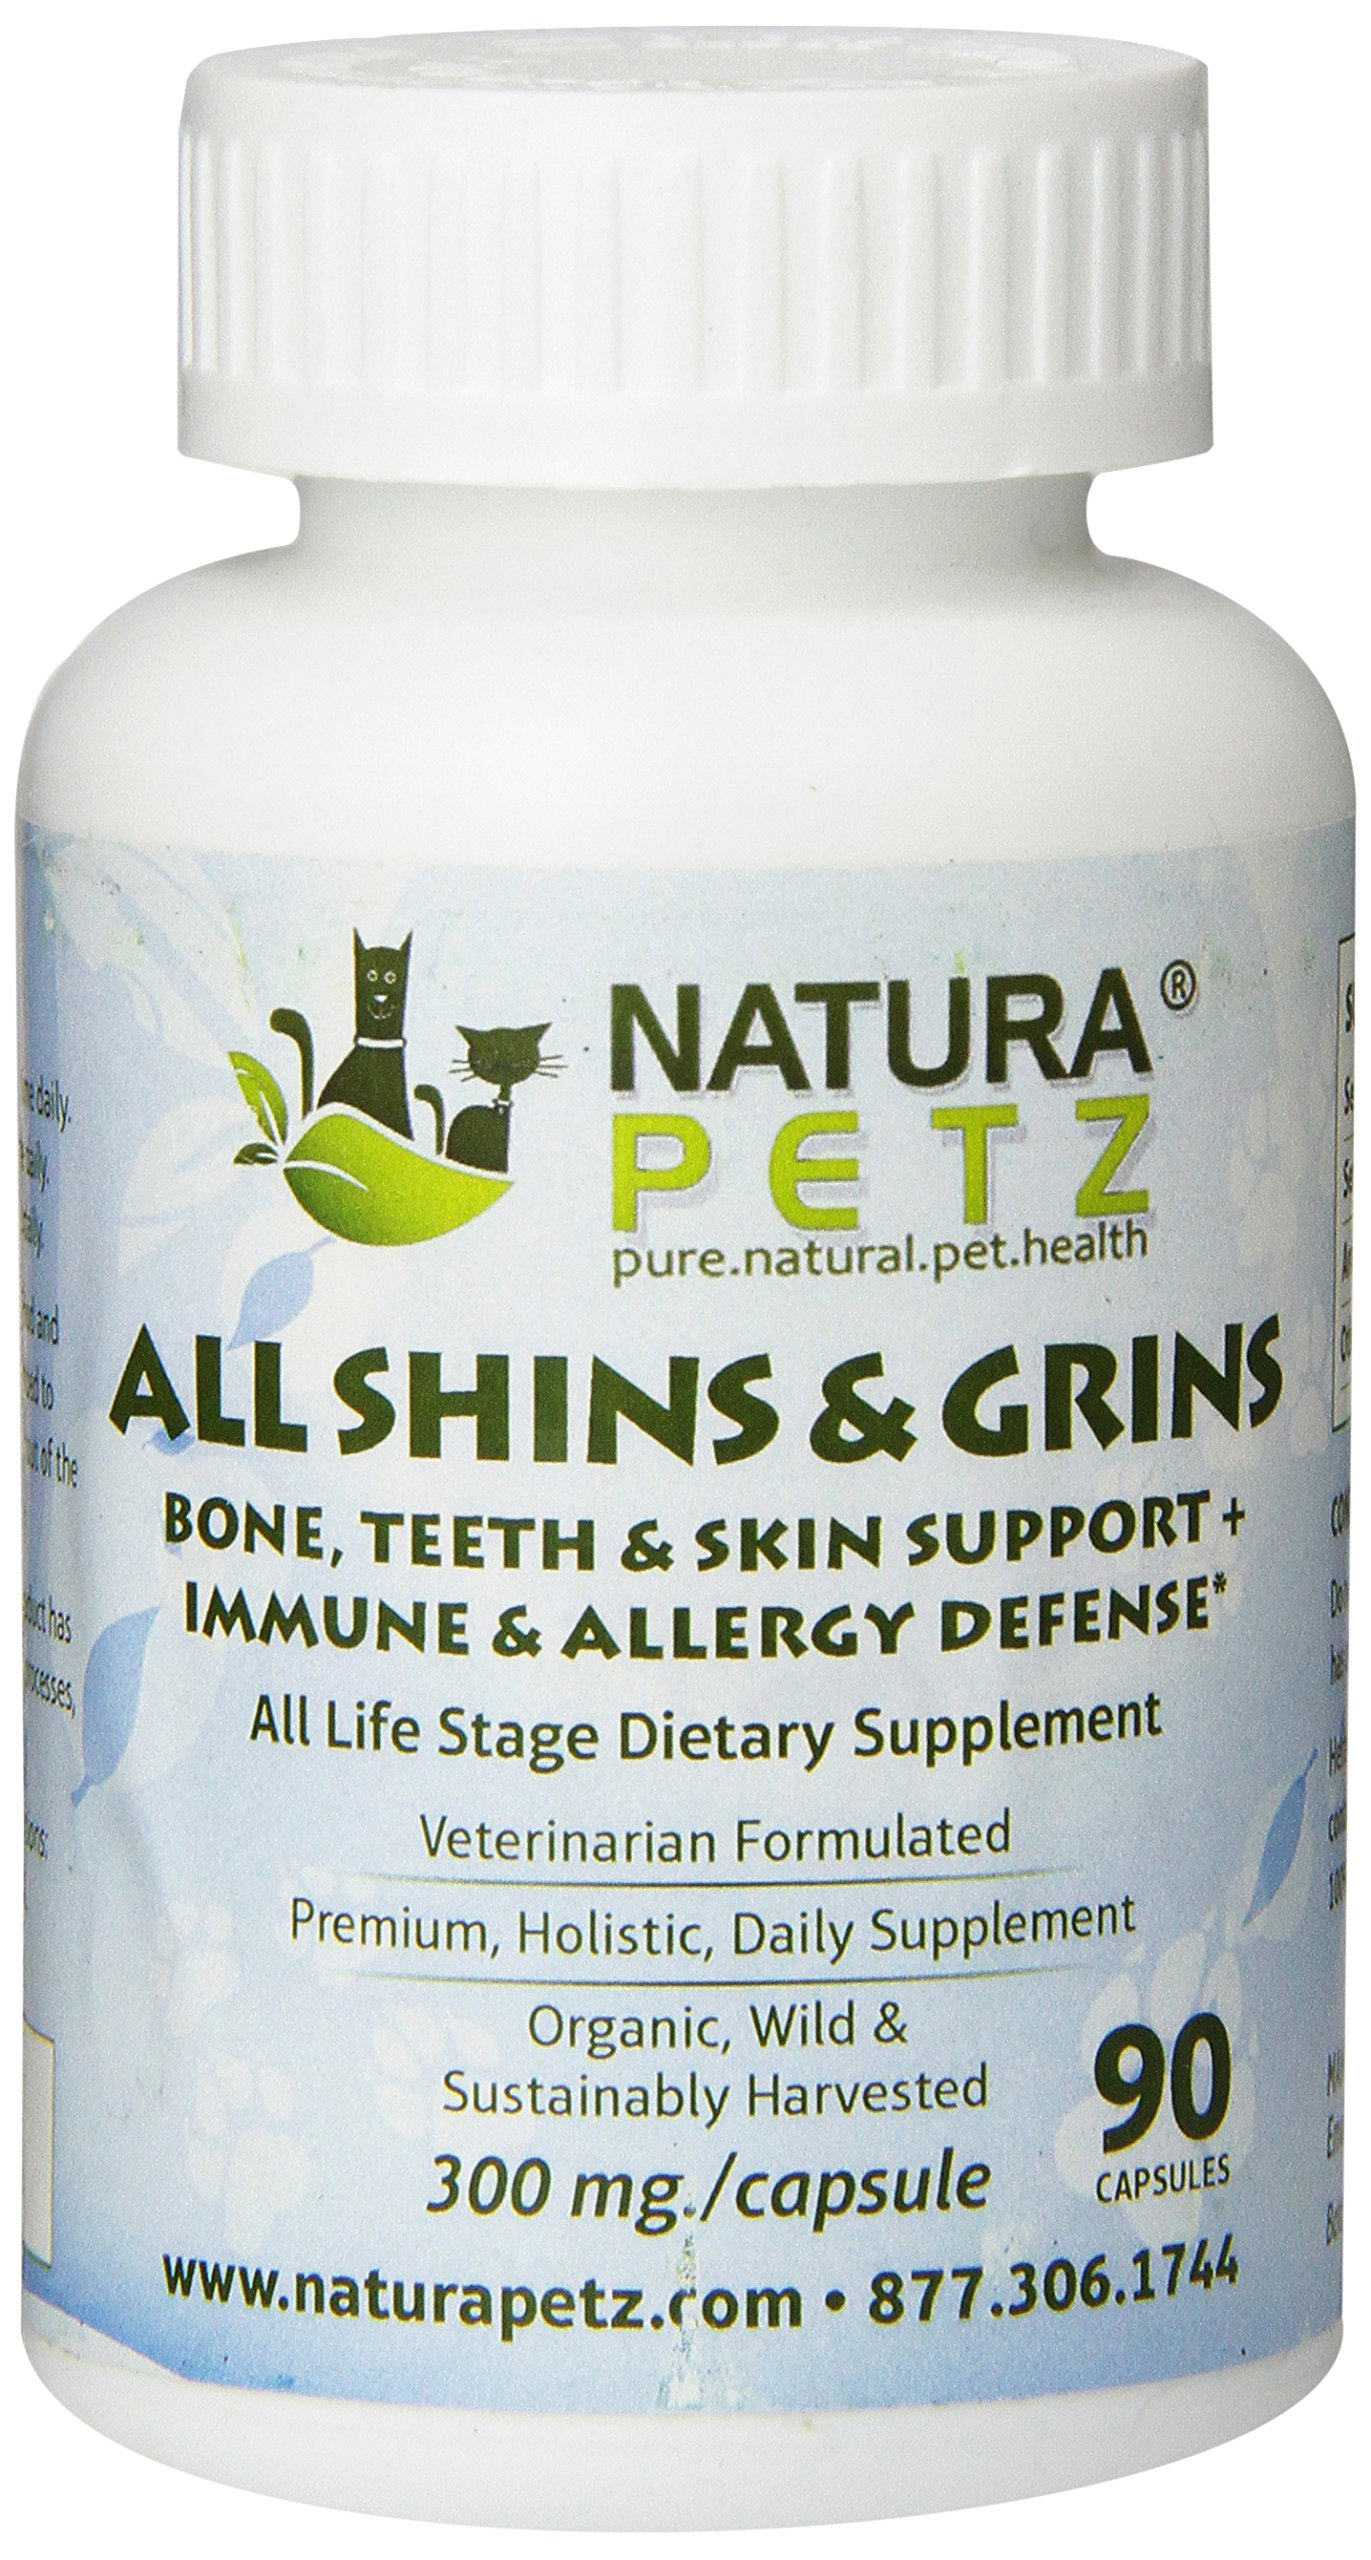 Natura Petz All Shins & Grins - Bone, Eye, Teeth & Skin Support + Immune Health & Allergy Defense